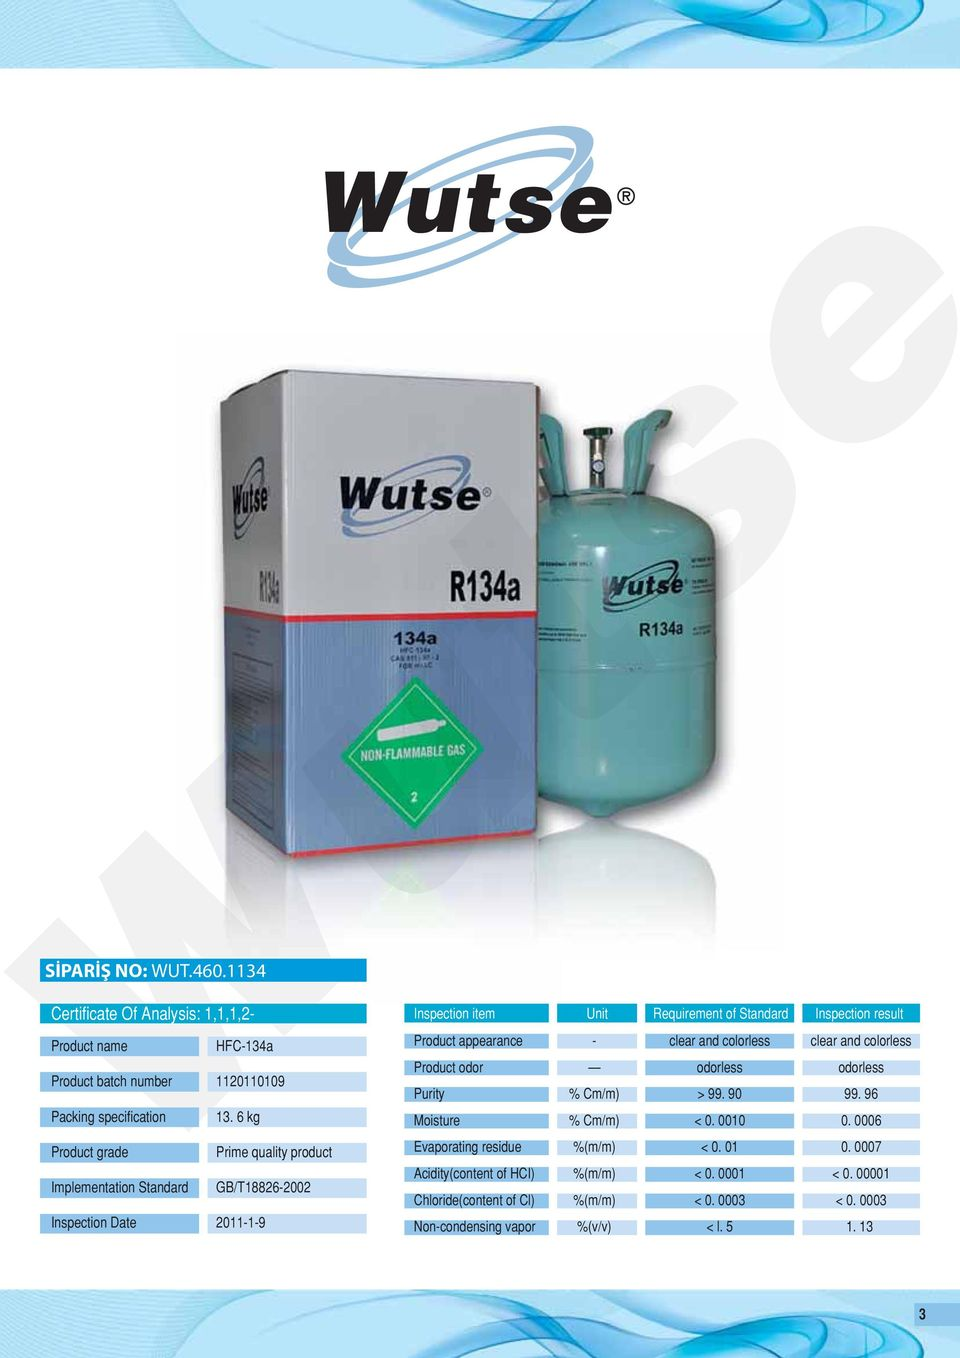 result Product appearance Product odor Purity Moisture Evaporating residue Acidity(content of HCI) Chloride(content of Cl) Non-condensing vapor - % Cm/m) % Cm/m)